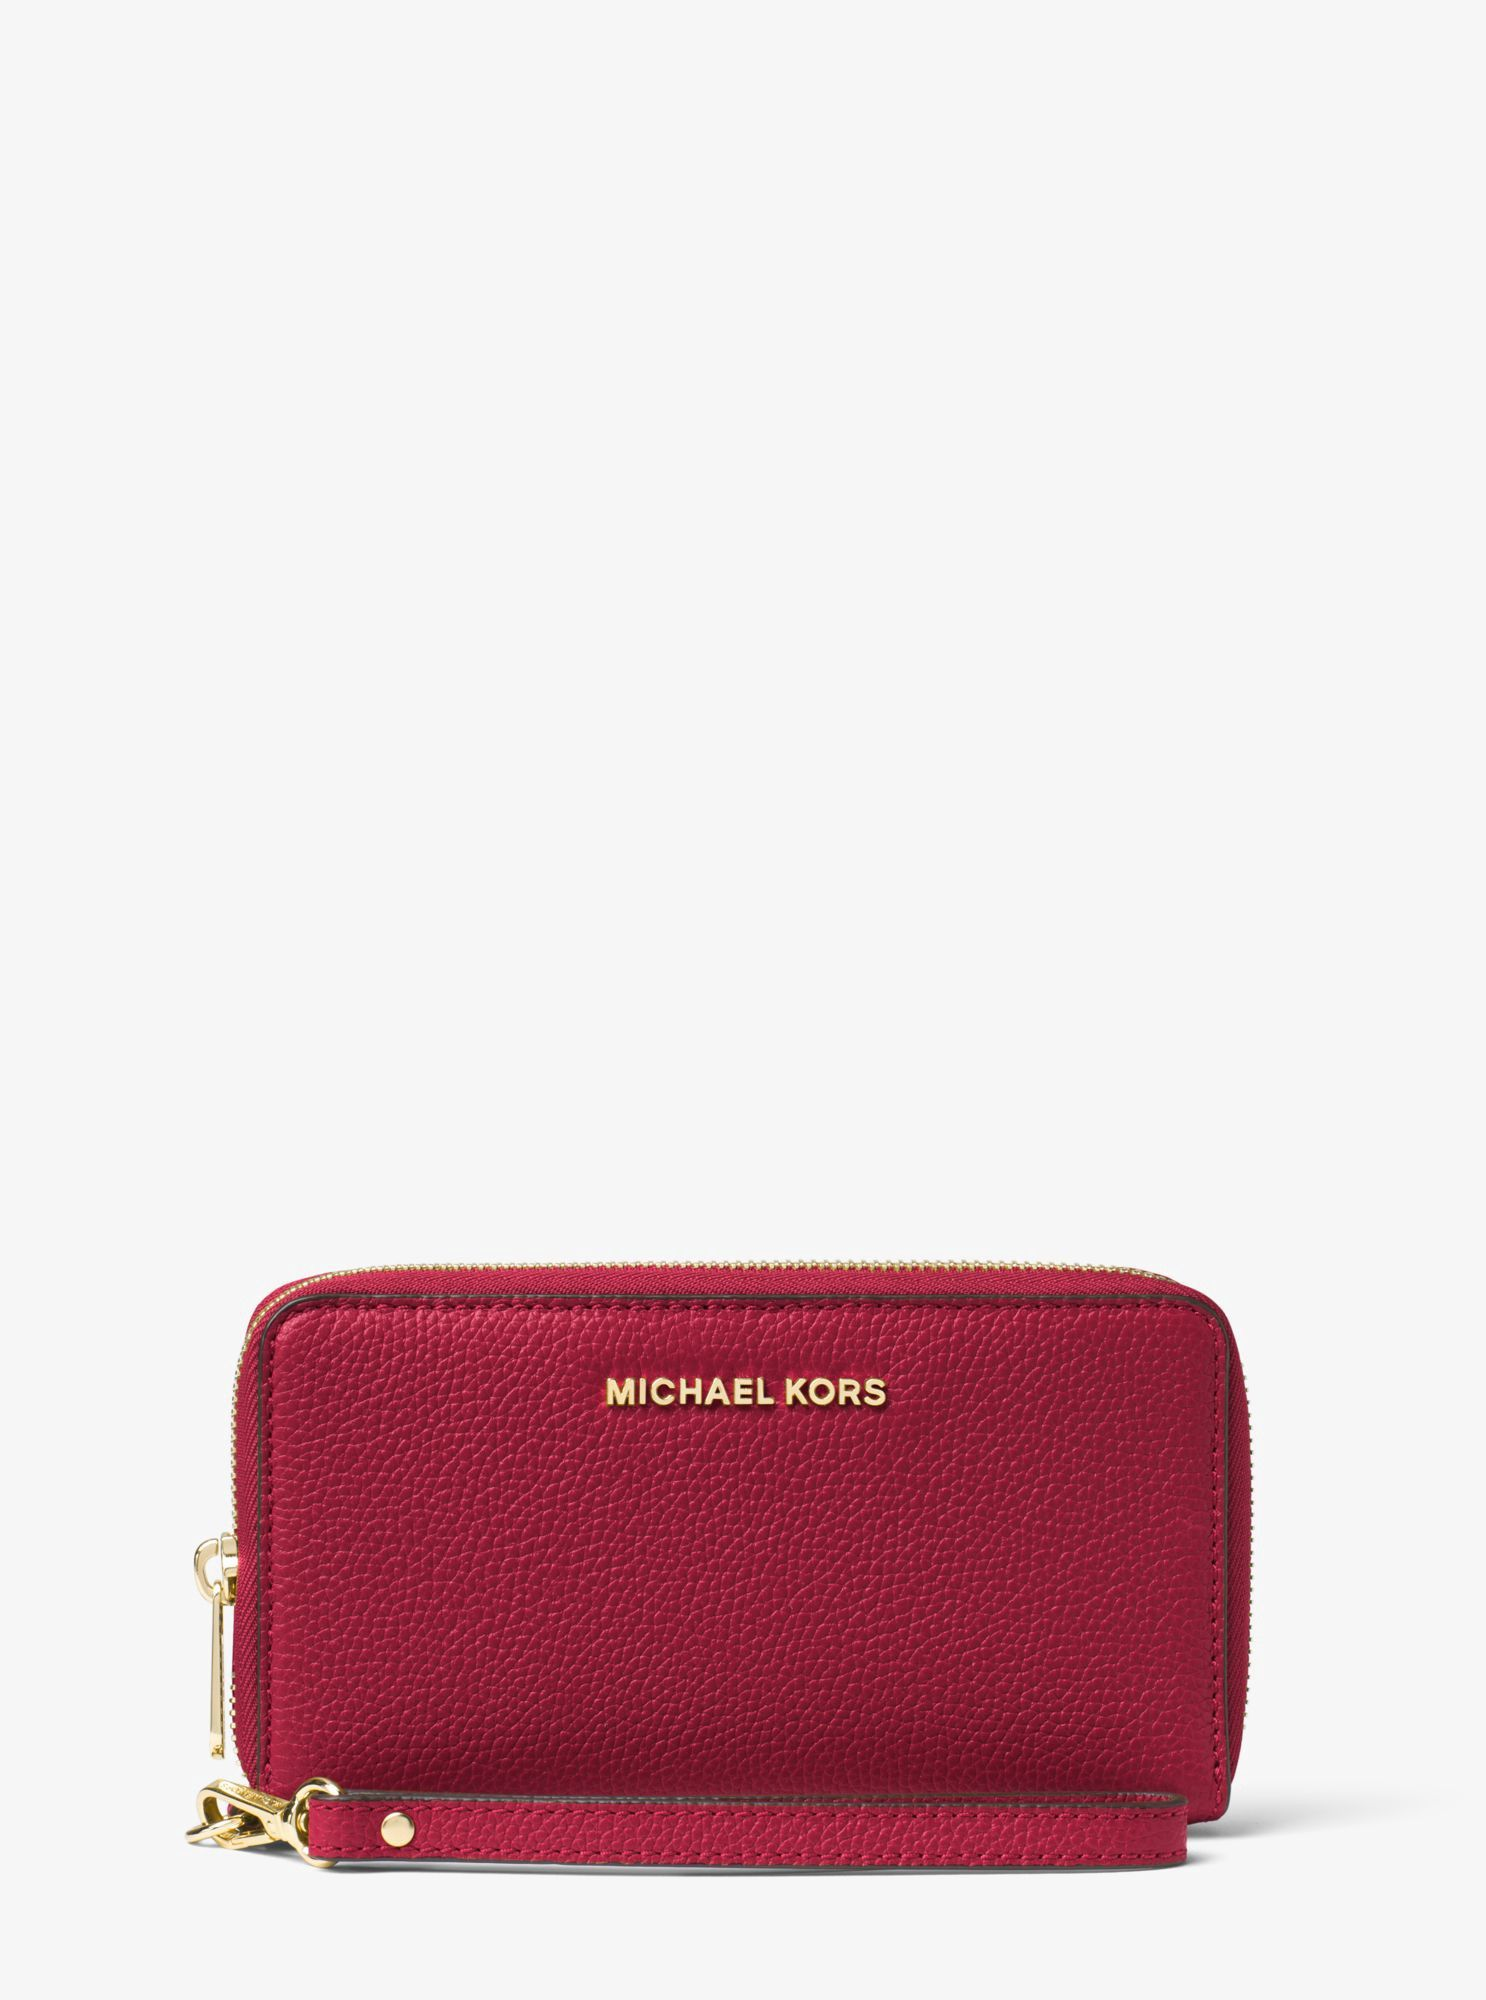 4ca642713e038 MICHAEL KORS Mercer Large Leather Smartphone Wristlet.  michaelkors  all